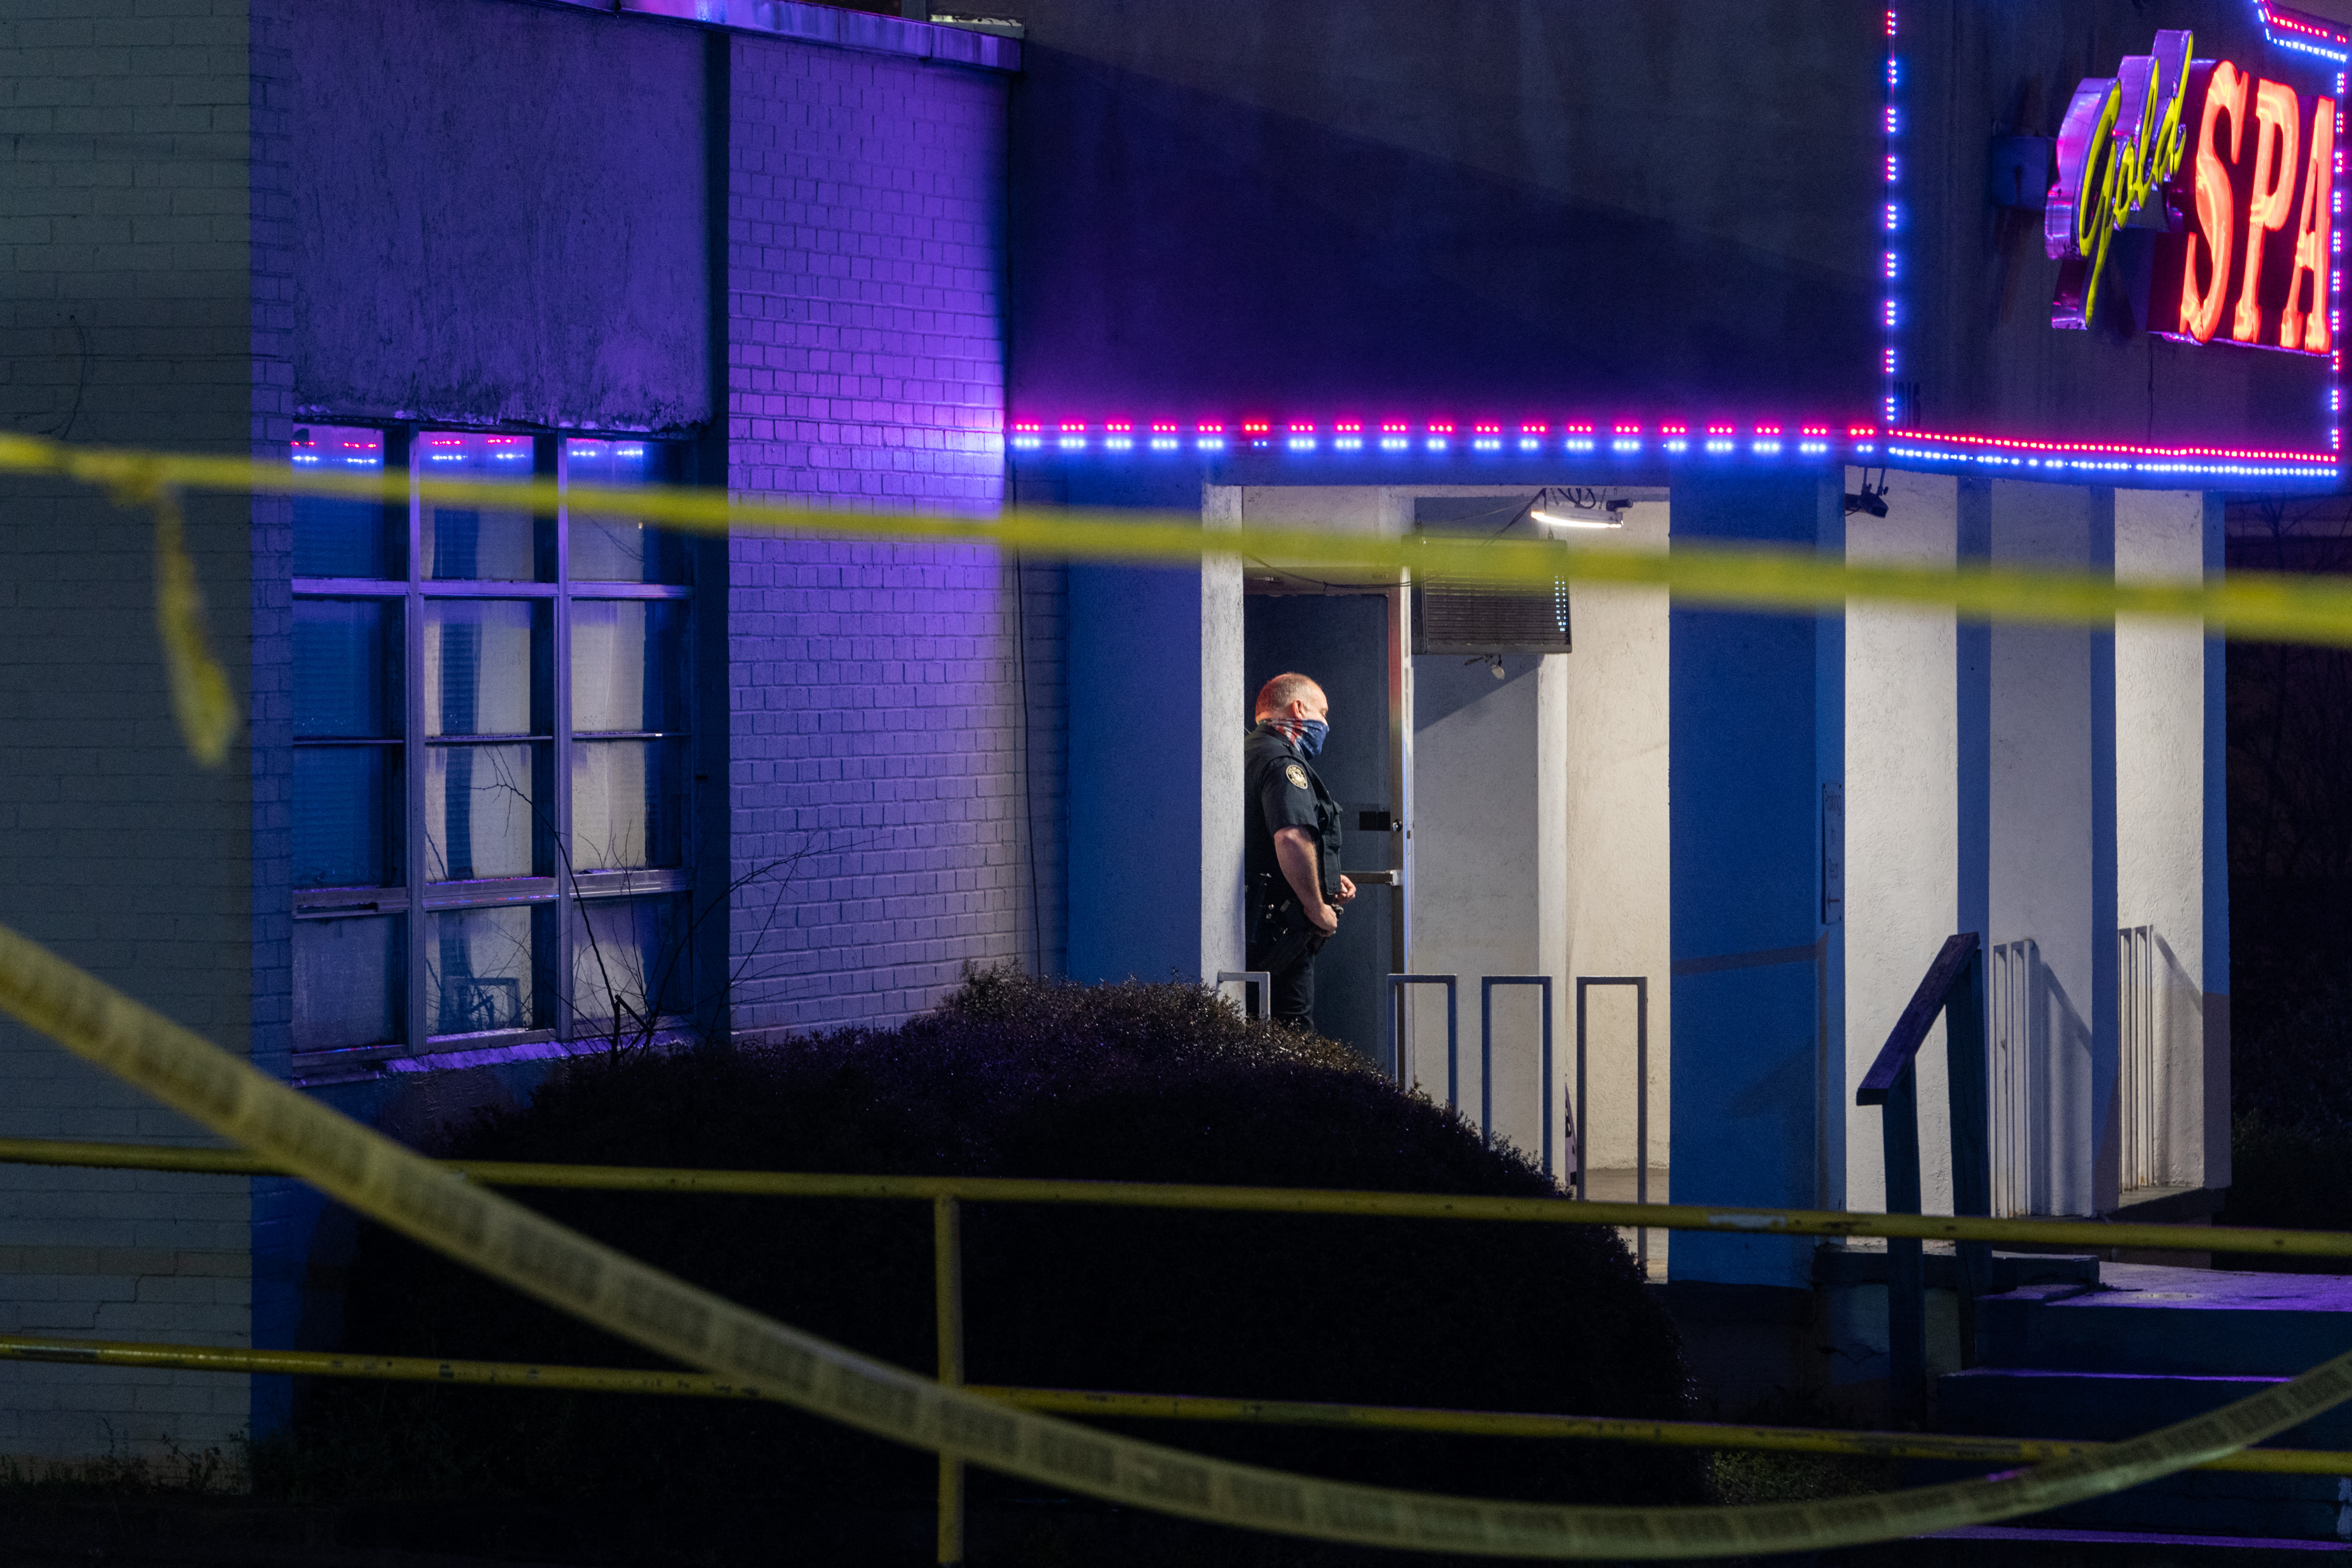 A police officer stands outside a spa where three people were shot and killed on March 16 in Atlanta, Georgia.